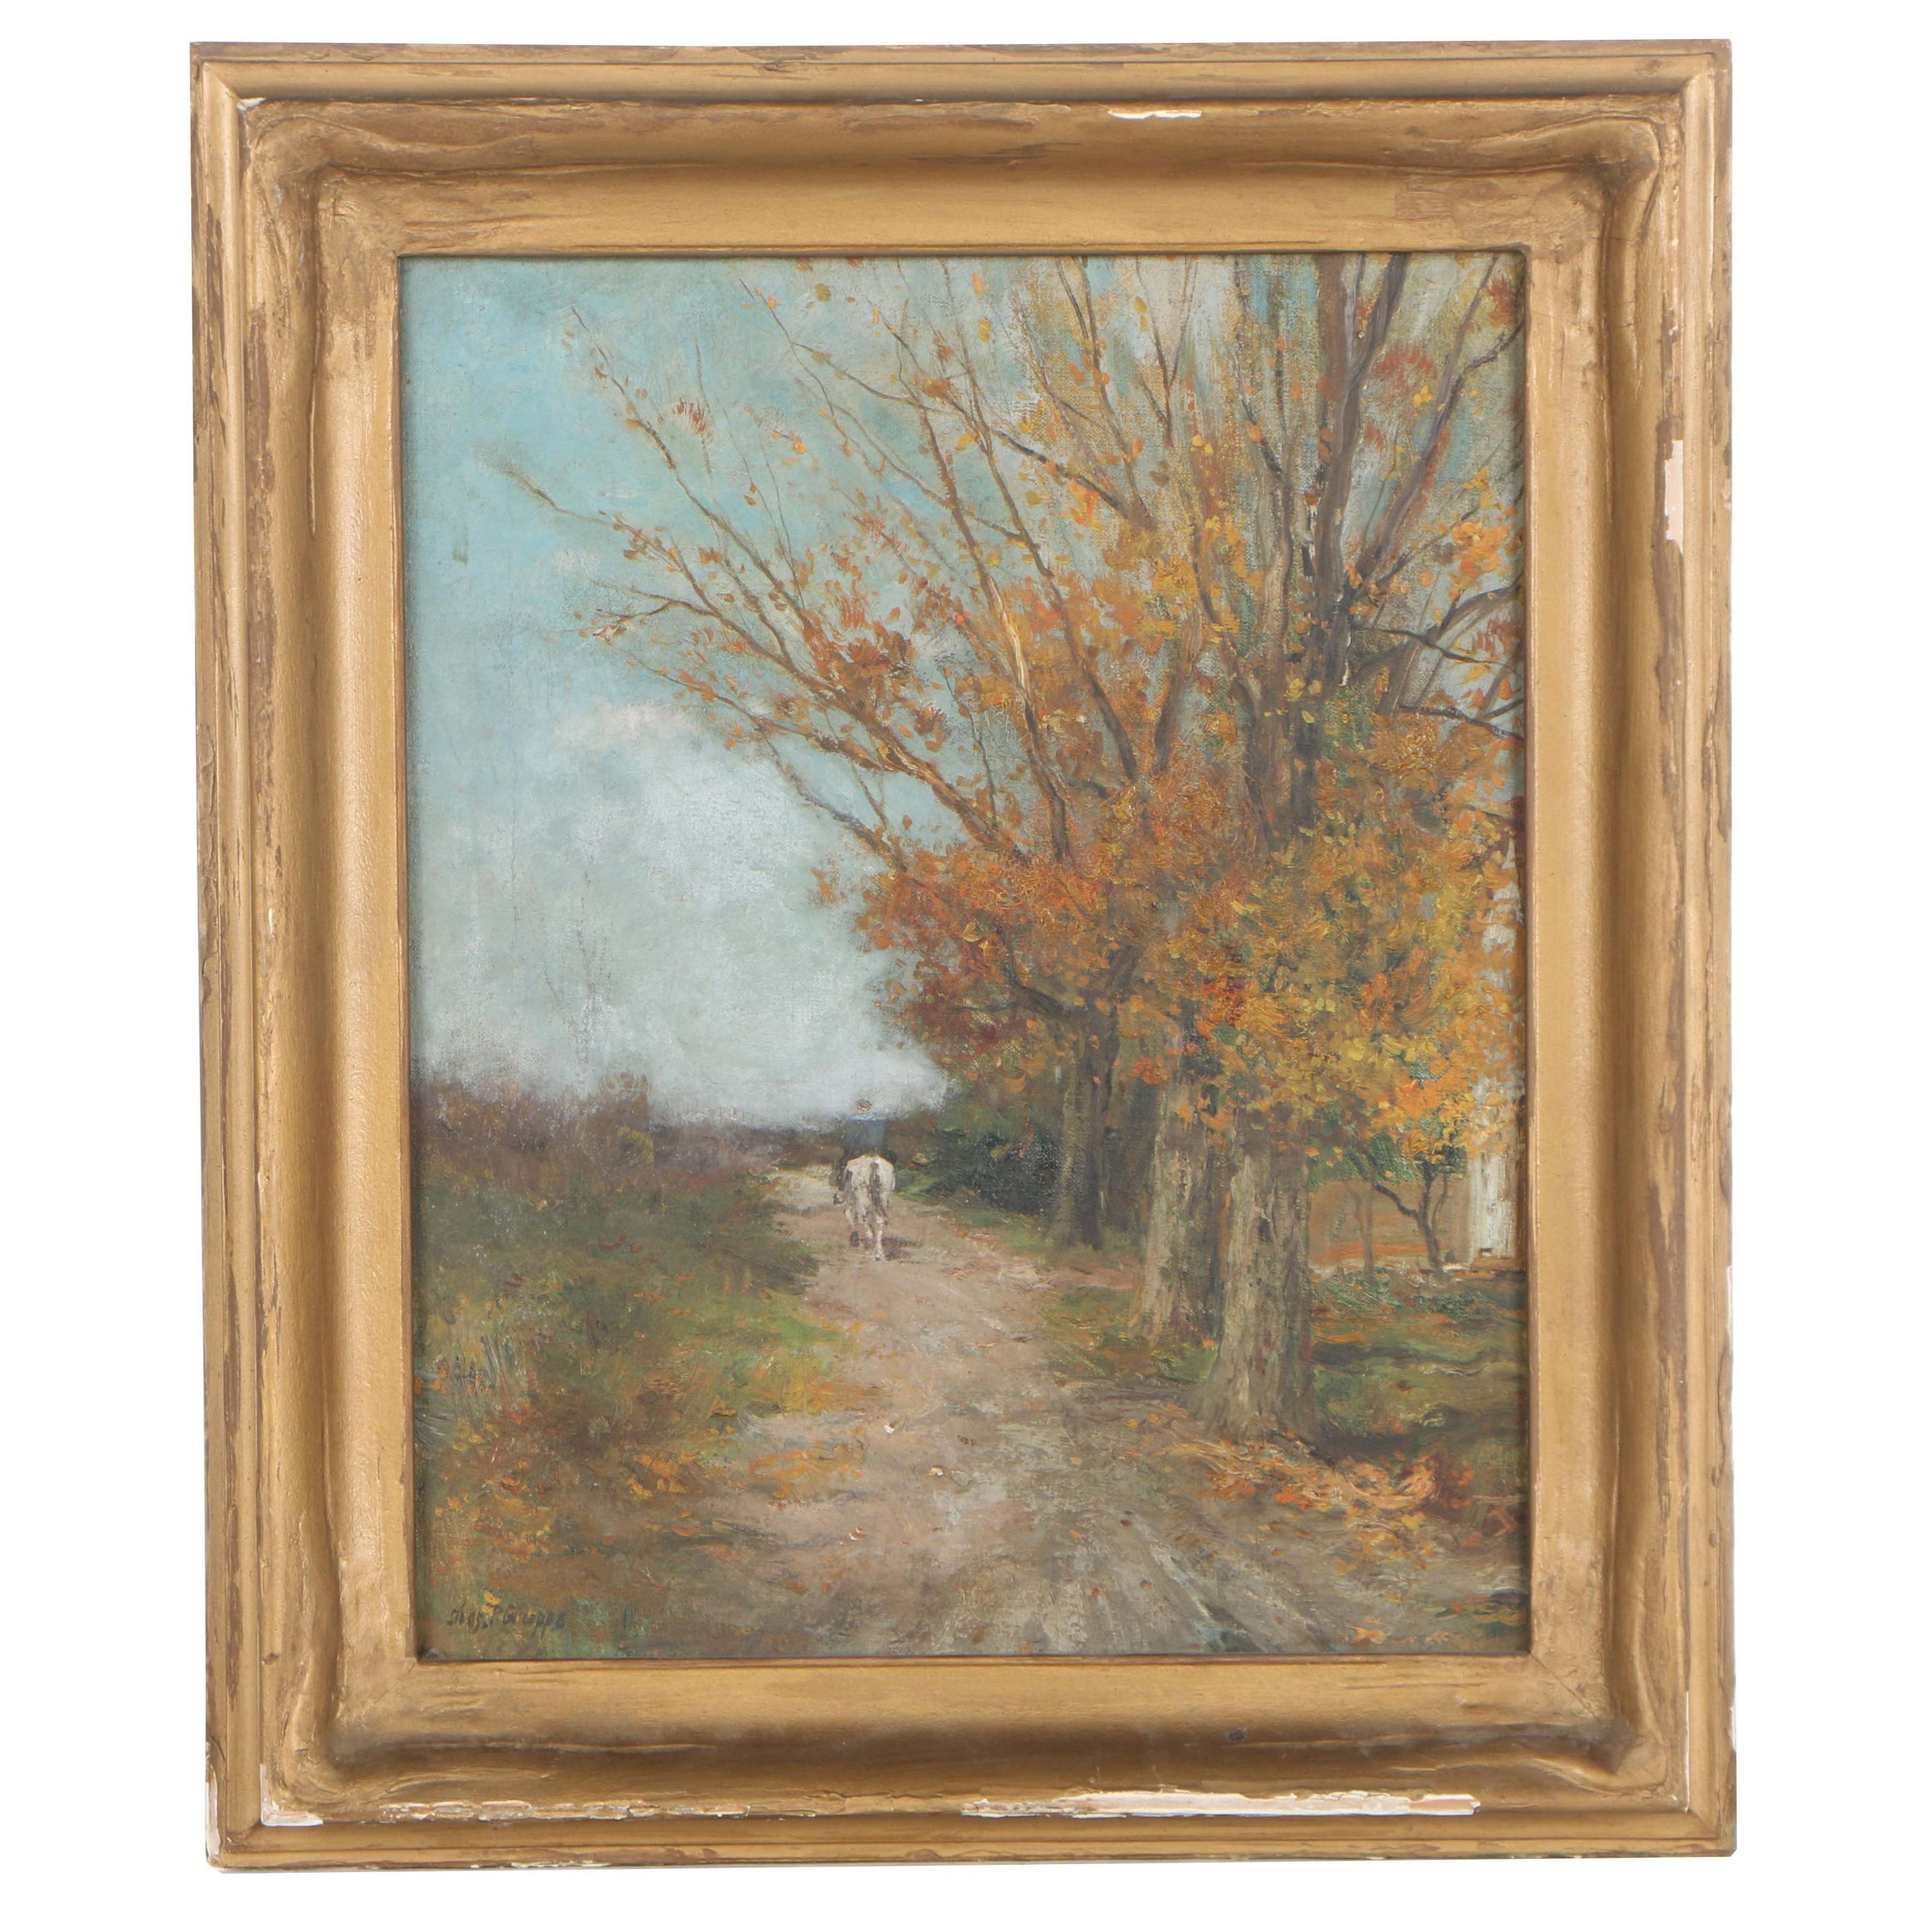 Charles P. Gruppe Early 20th Century Oil Painting on Canvas